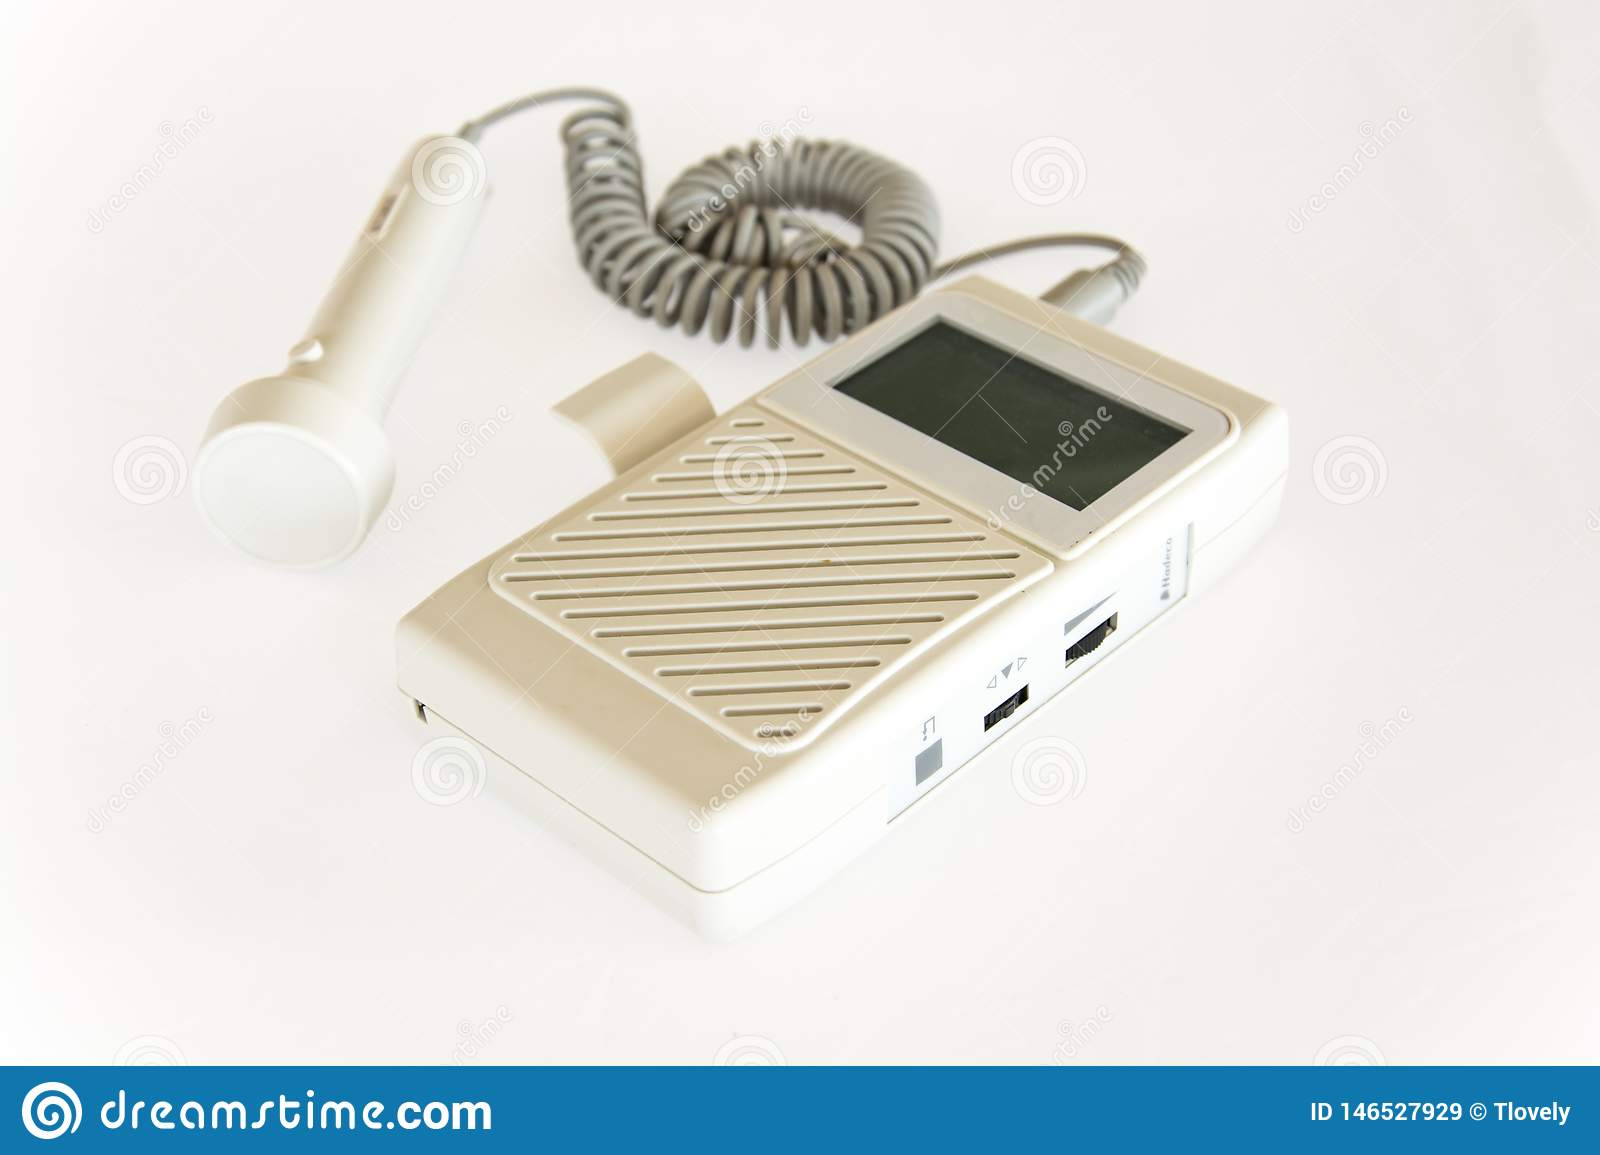 Ultrasonic investigation medical device for diagnostics  Hospital equipment